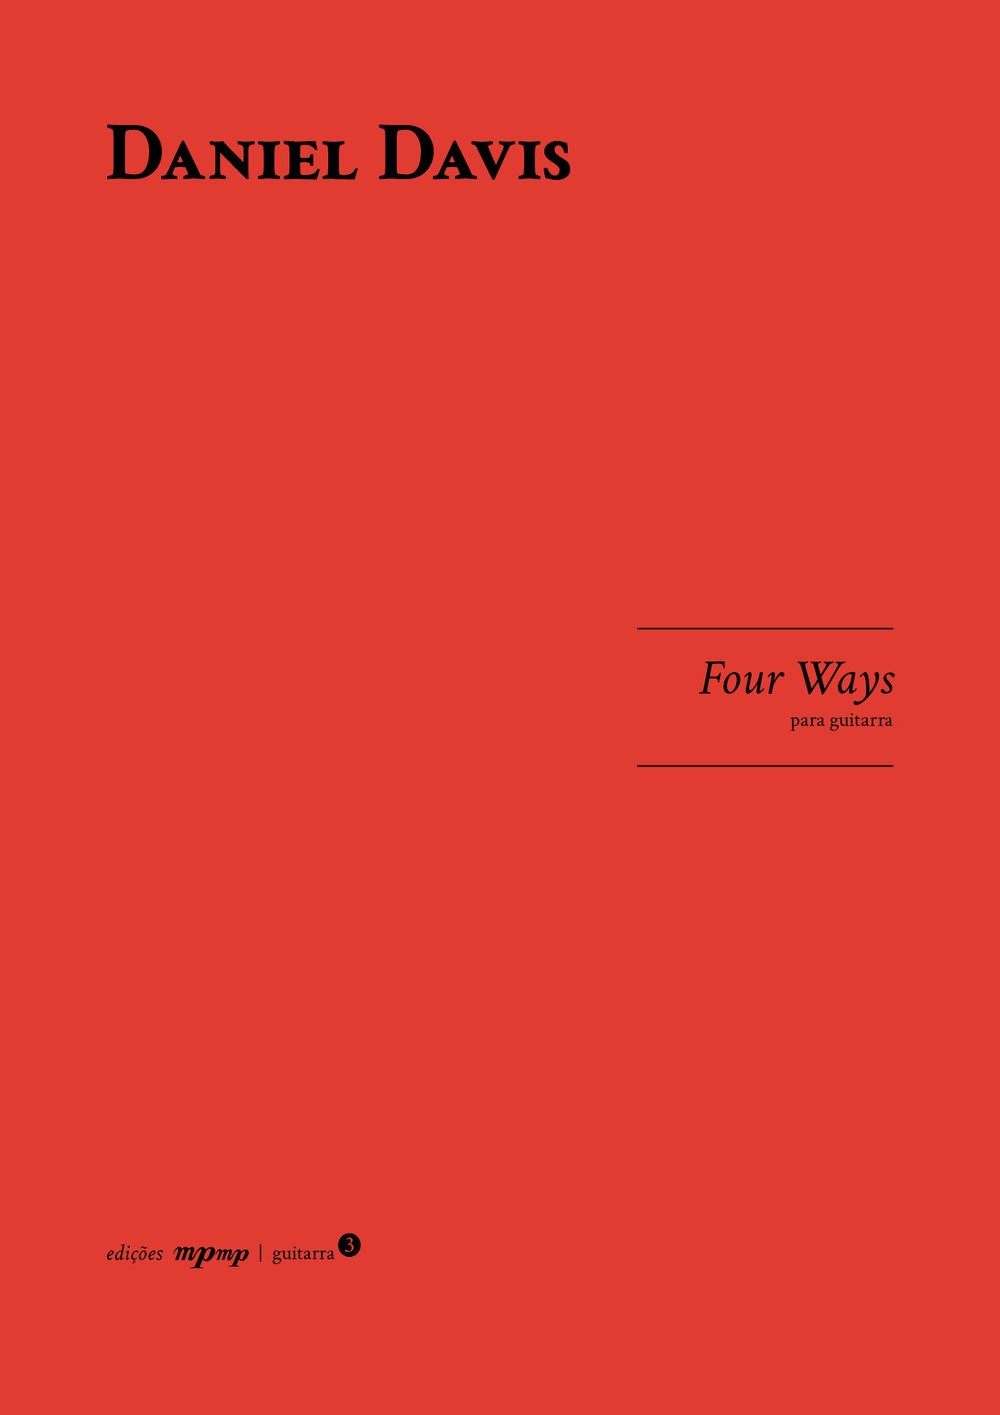 Four Ways for Guitar, mpmp editions front cover